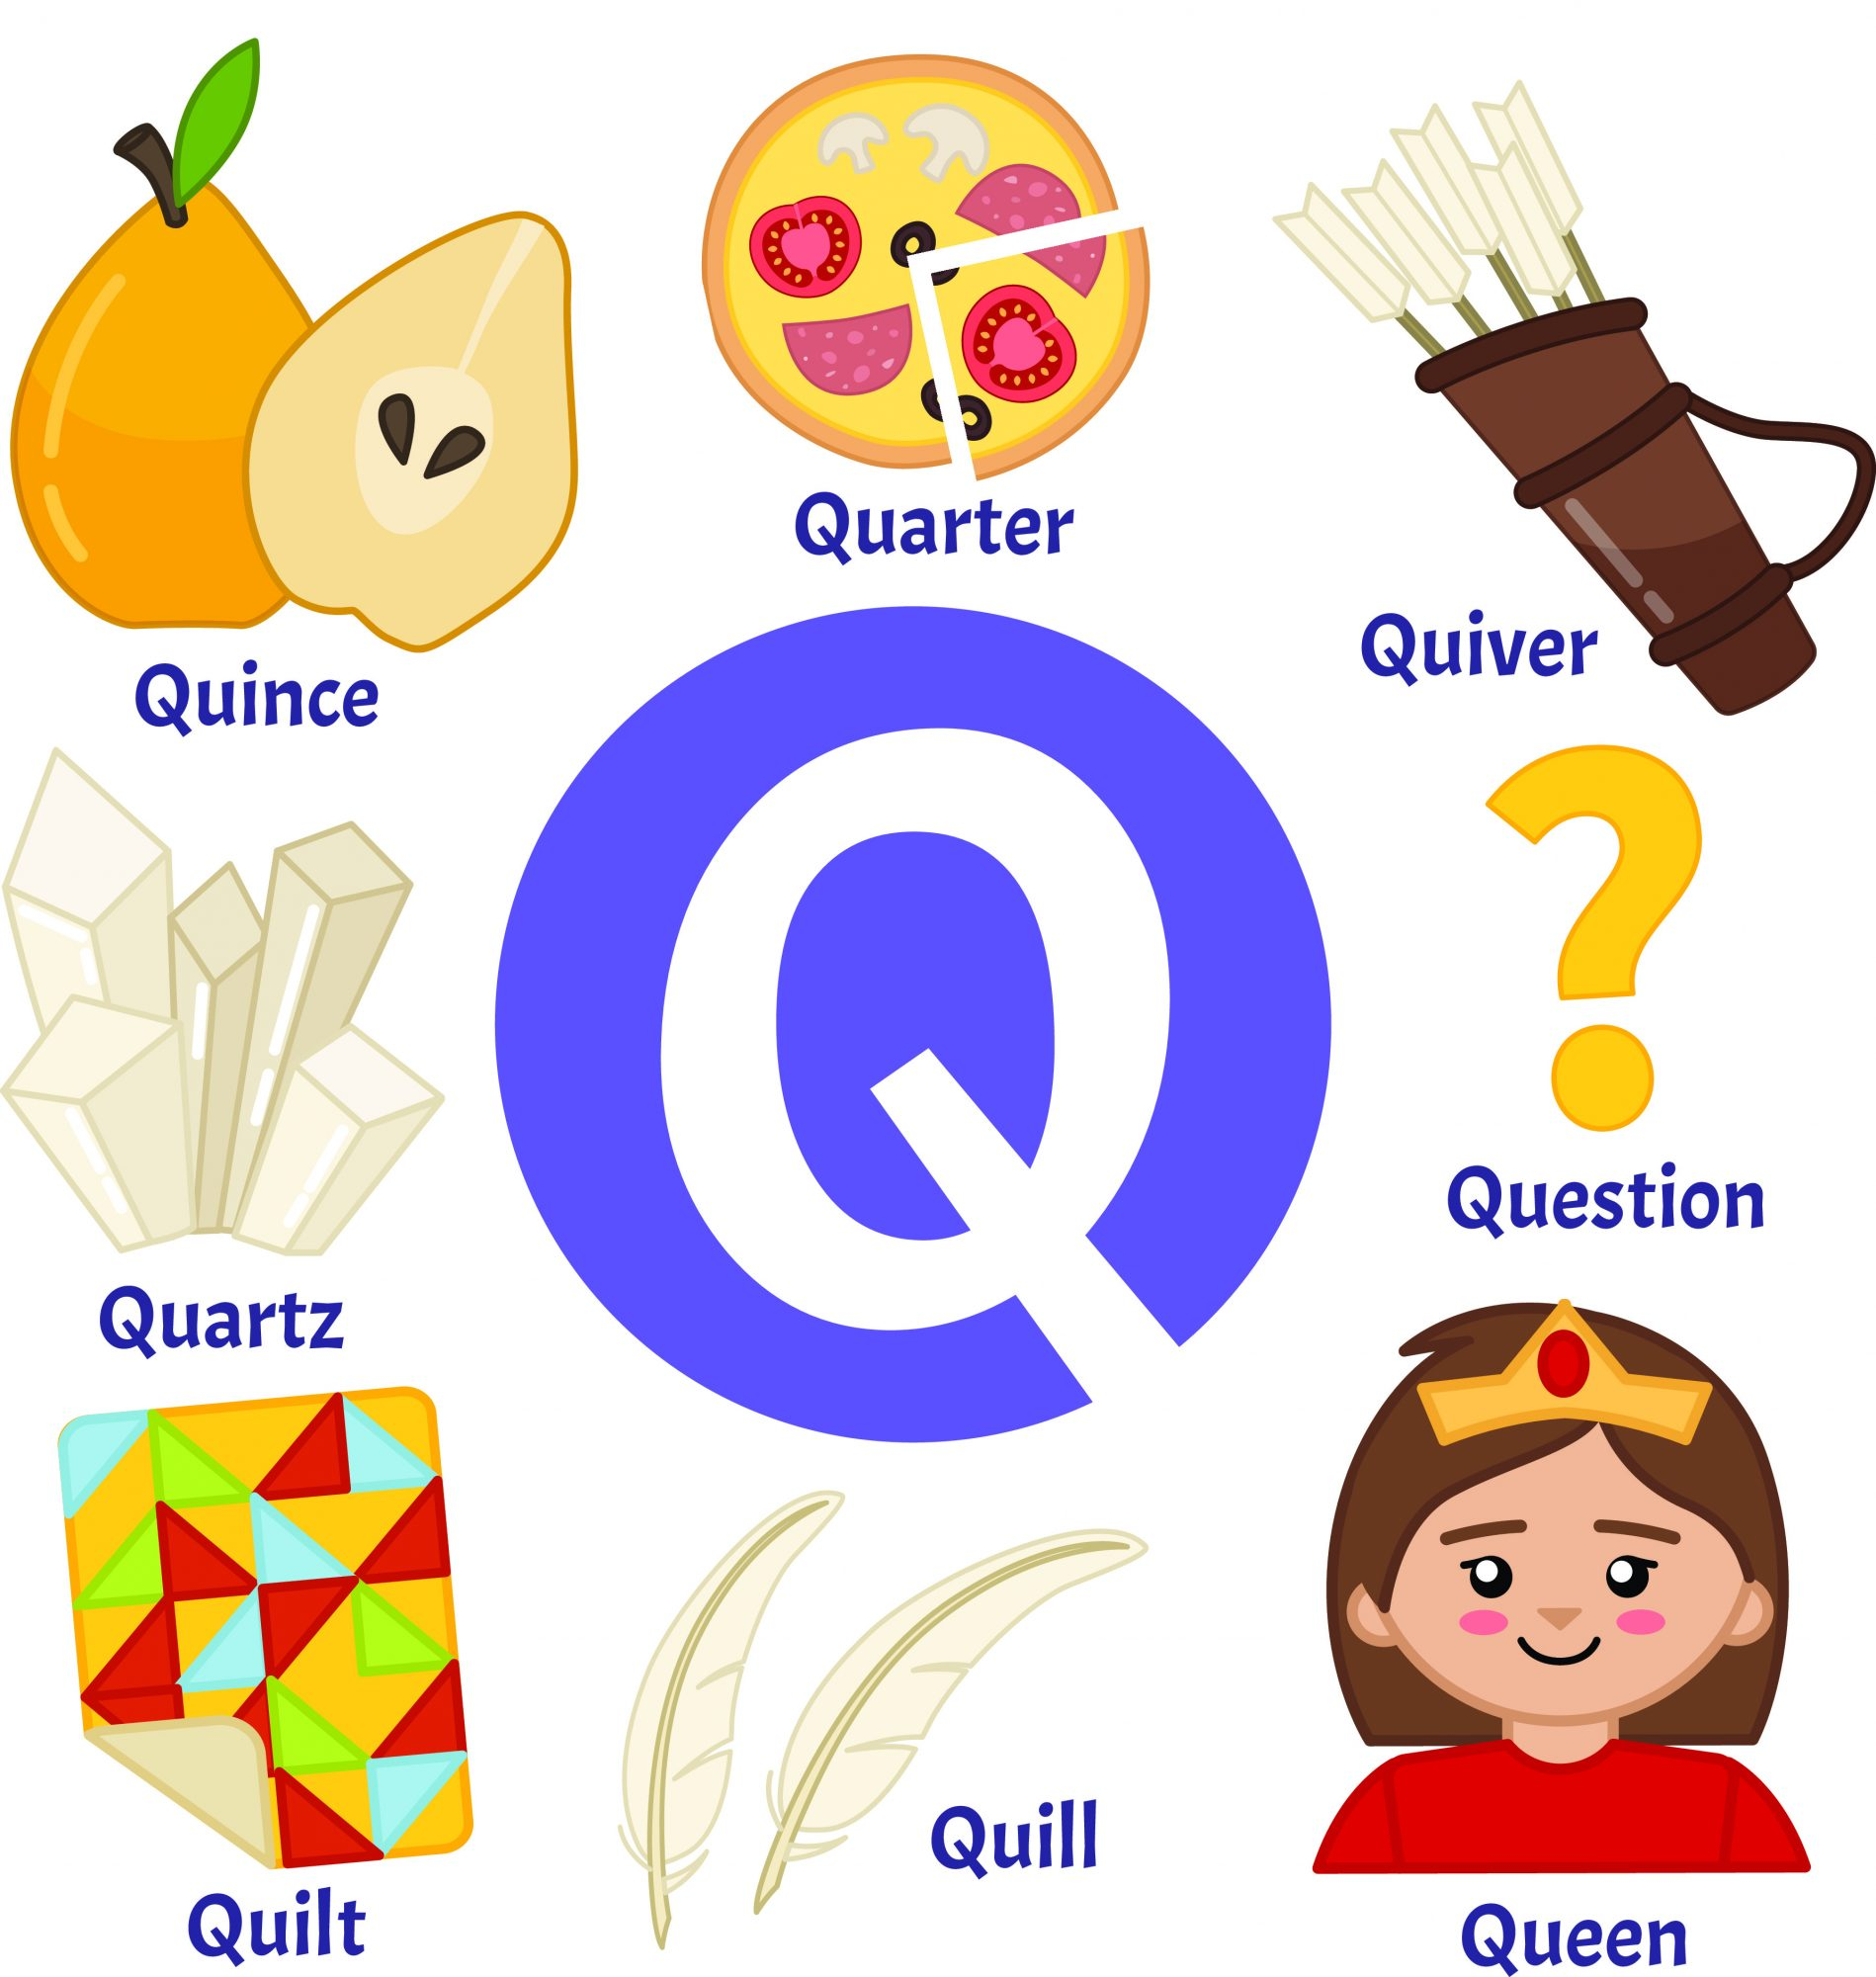 Q and U words